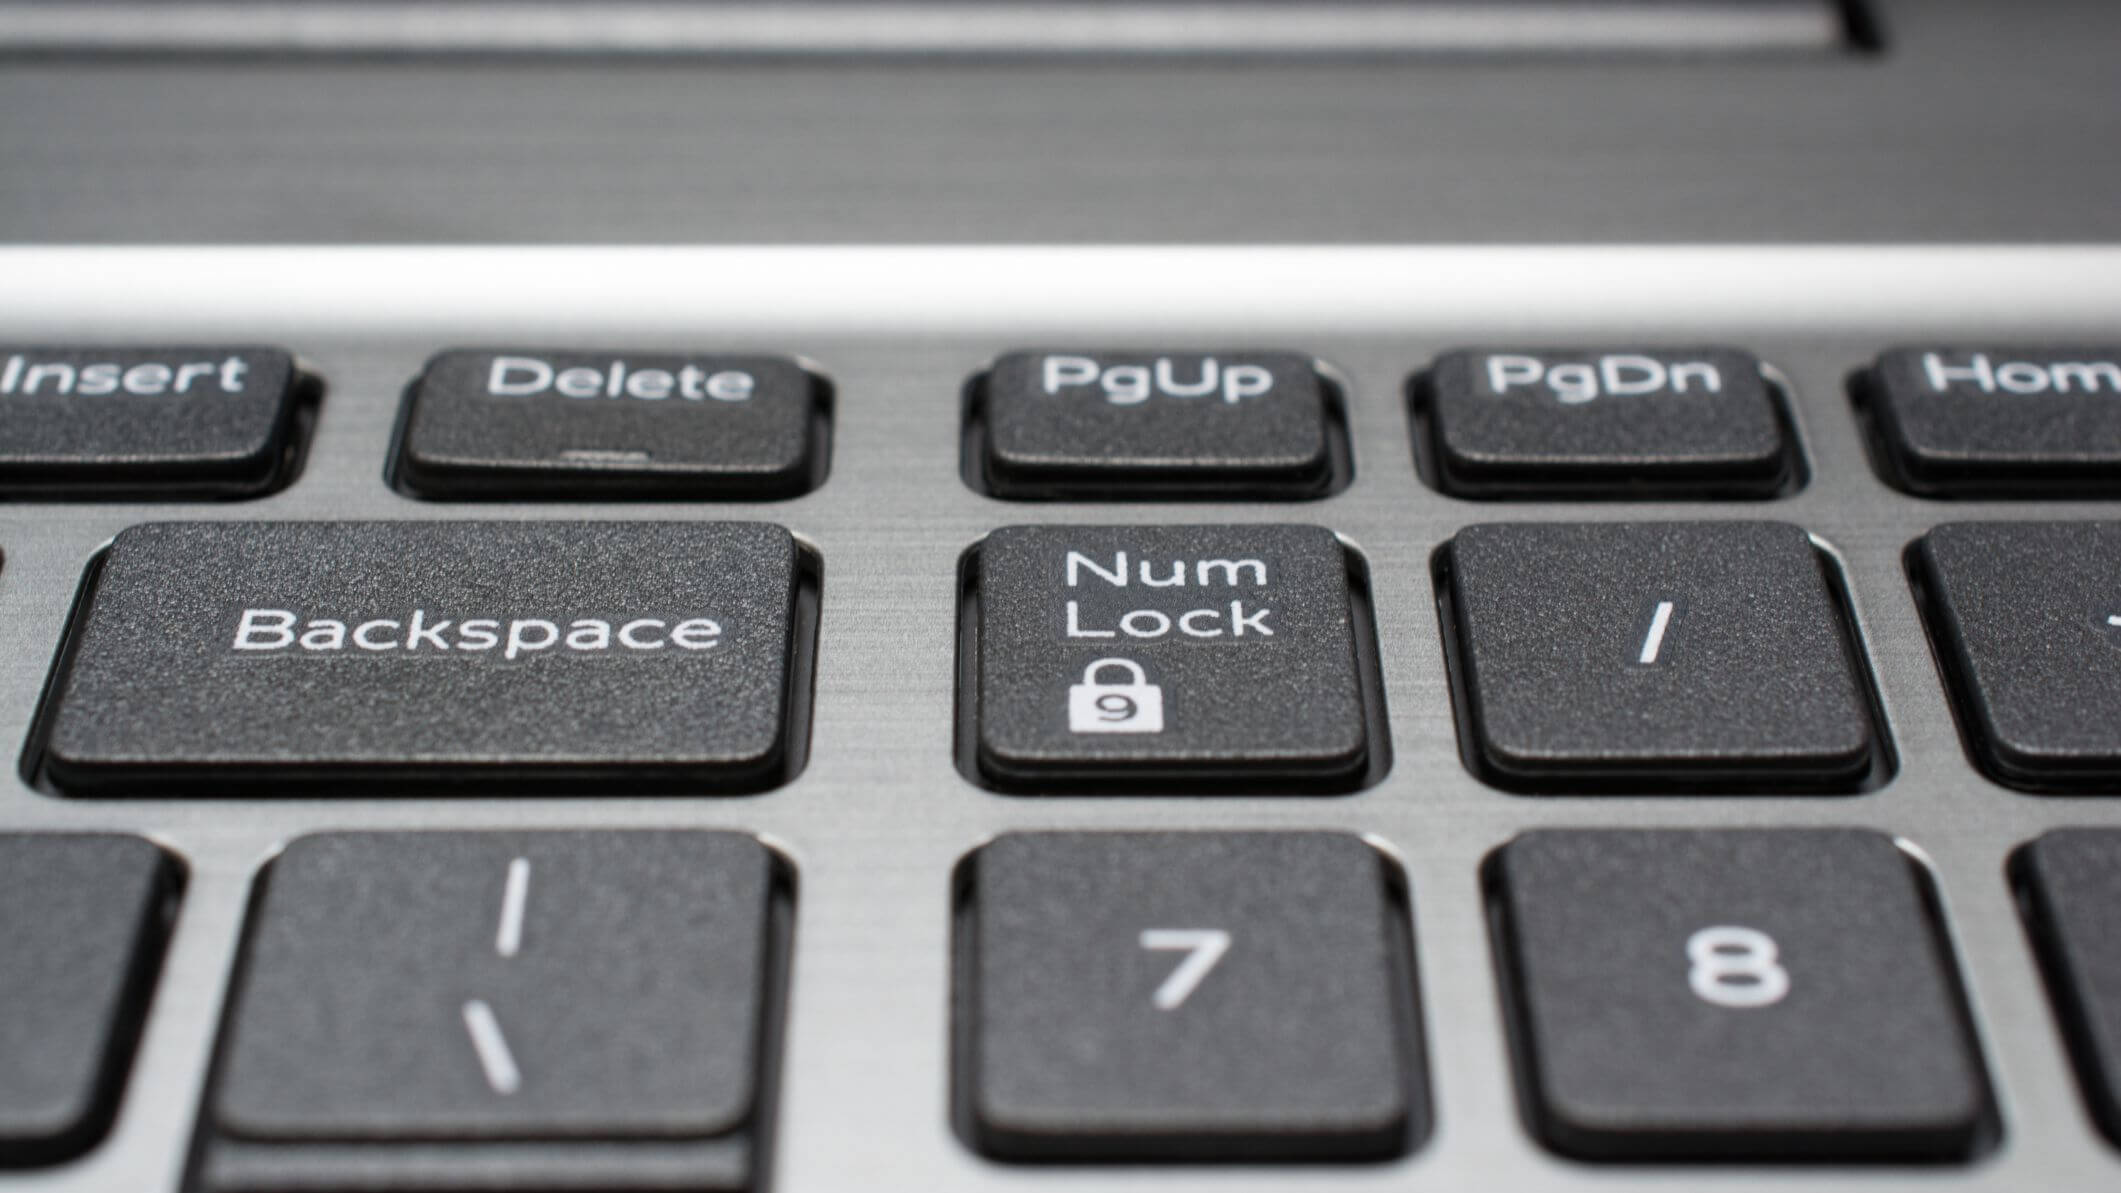 How to Keep Num Lock On After Startup on Windows 10